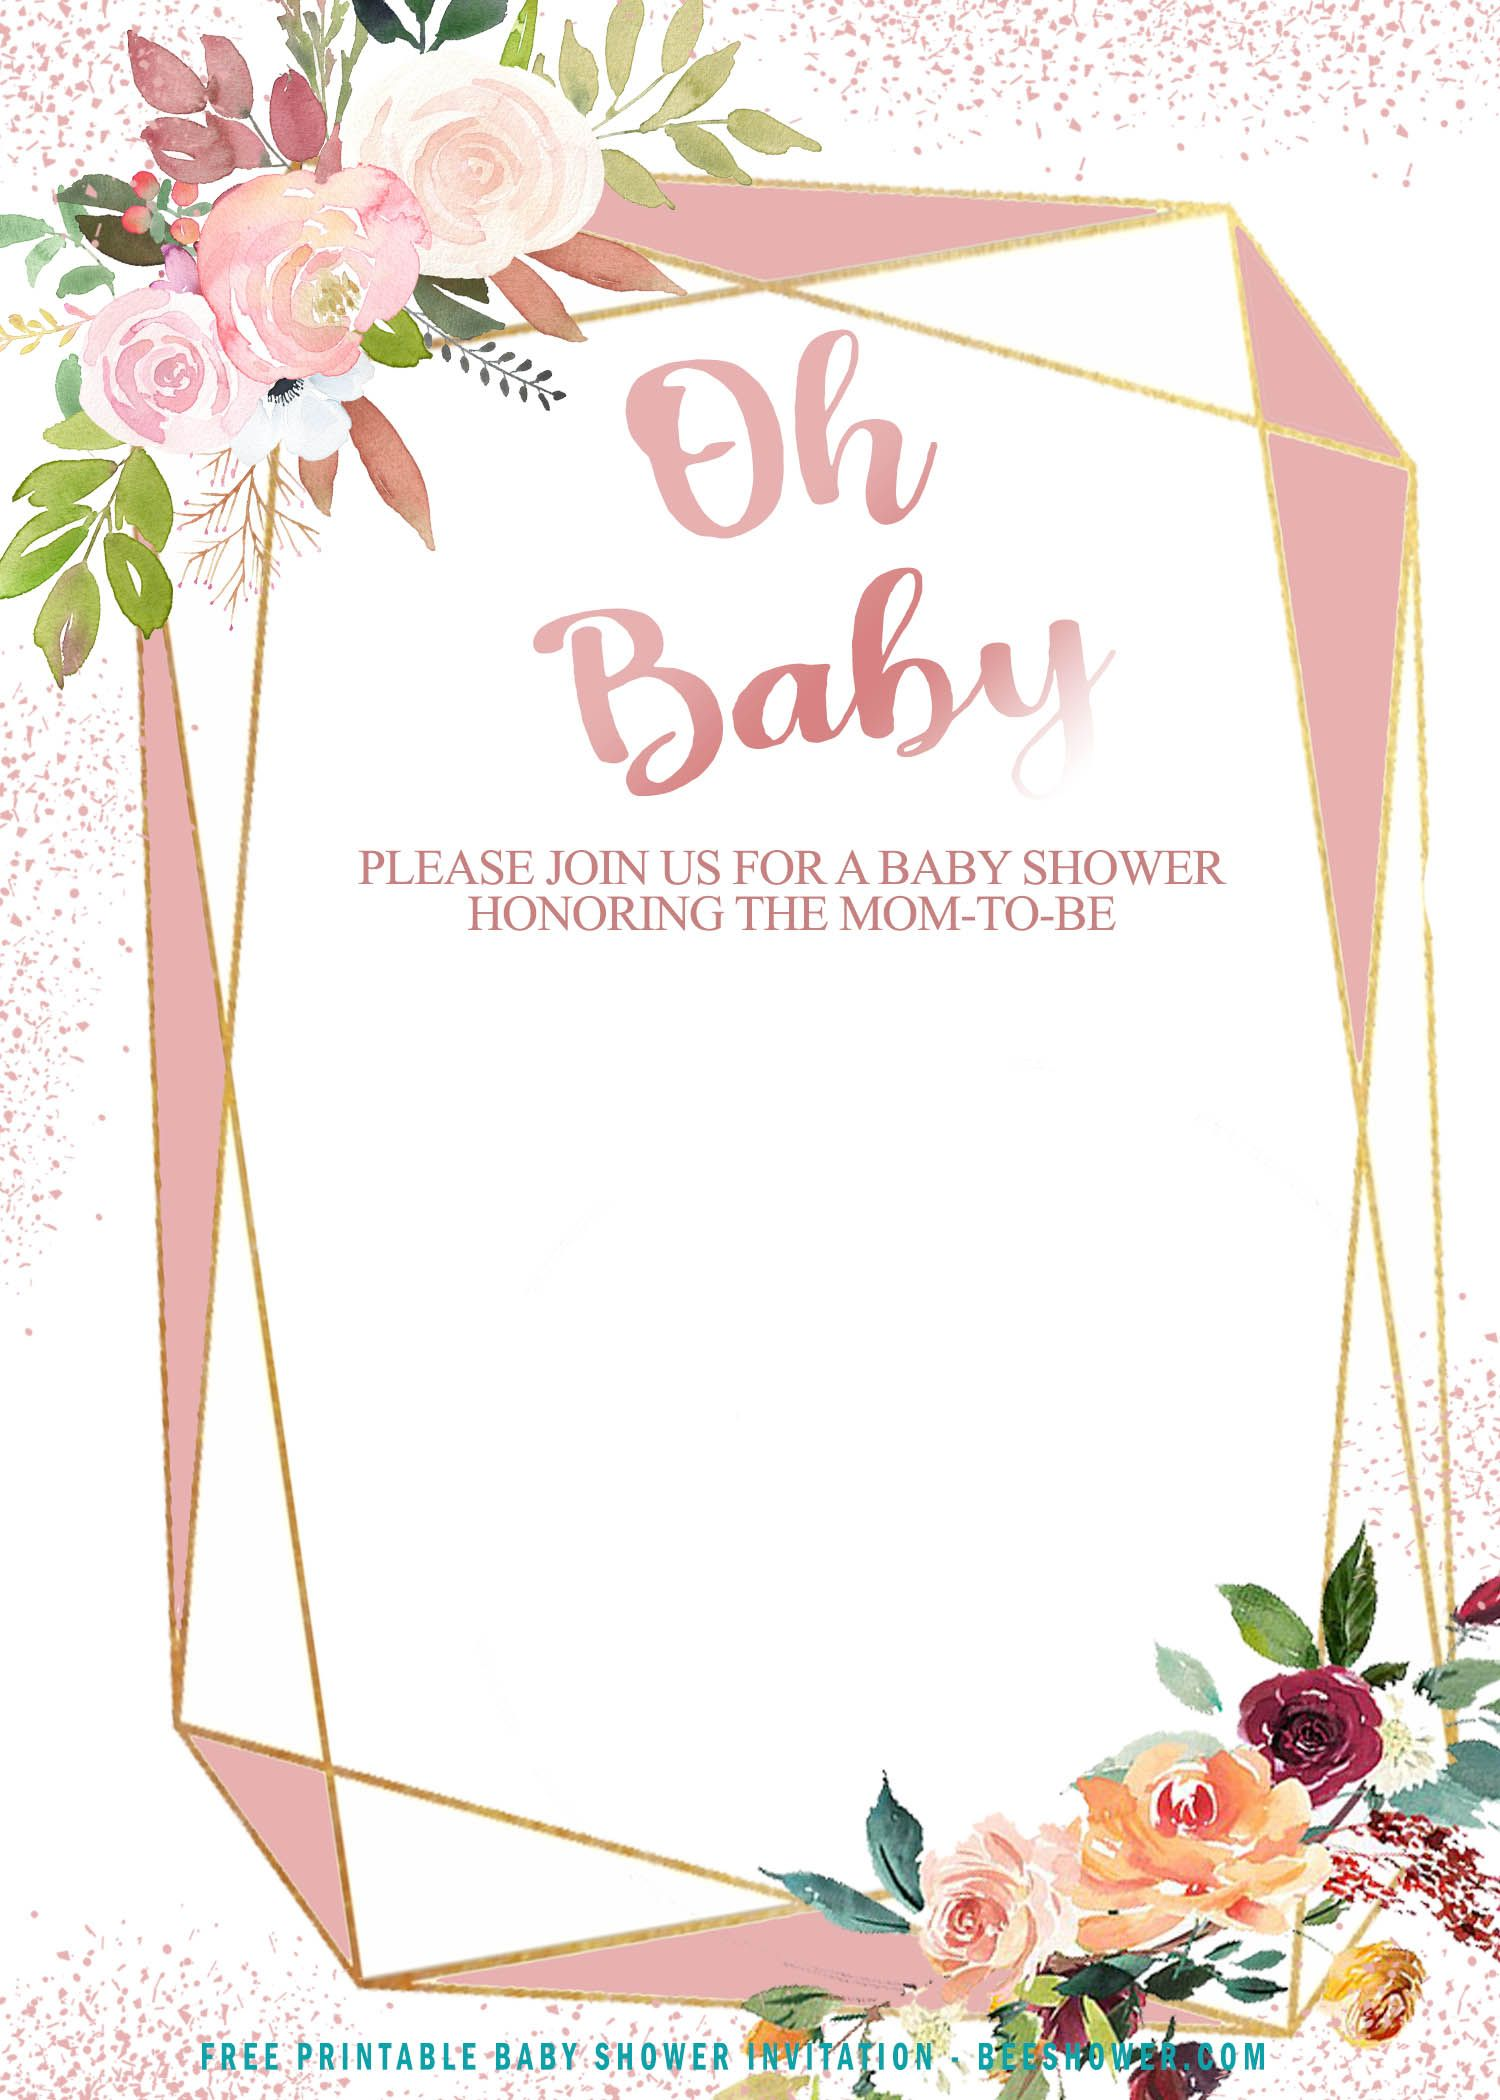 Free Printable Rose Gold Geometric Baby Shower Invitation Templates Free Printable Baby Shower Invitations Free Invitation Templates Baby Shower Templates